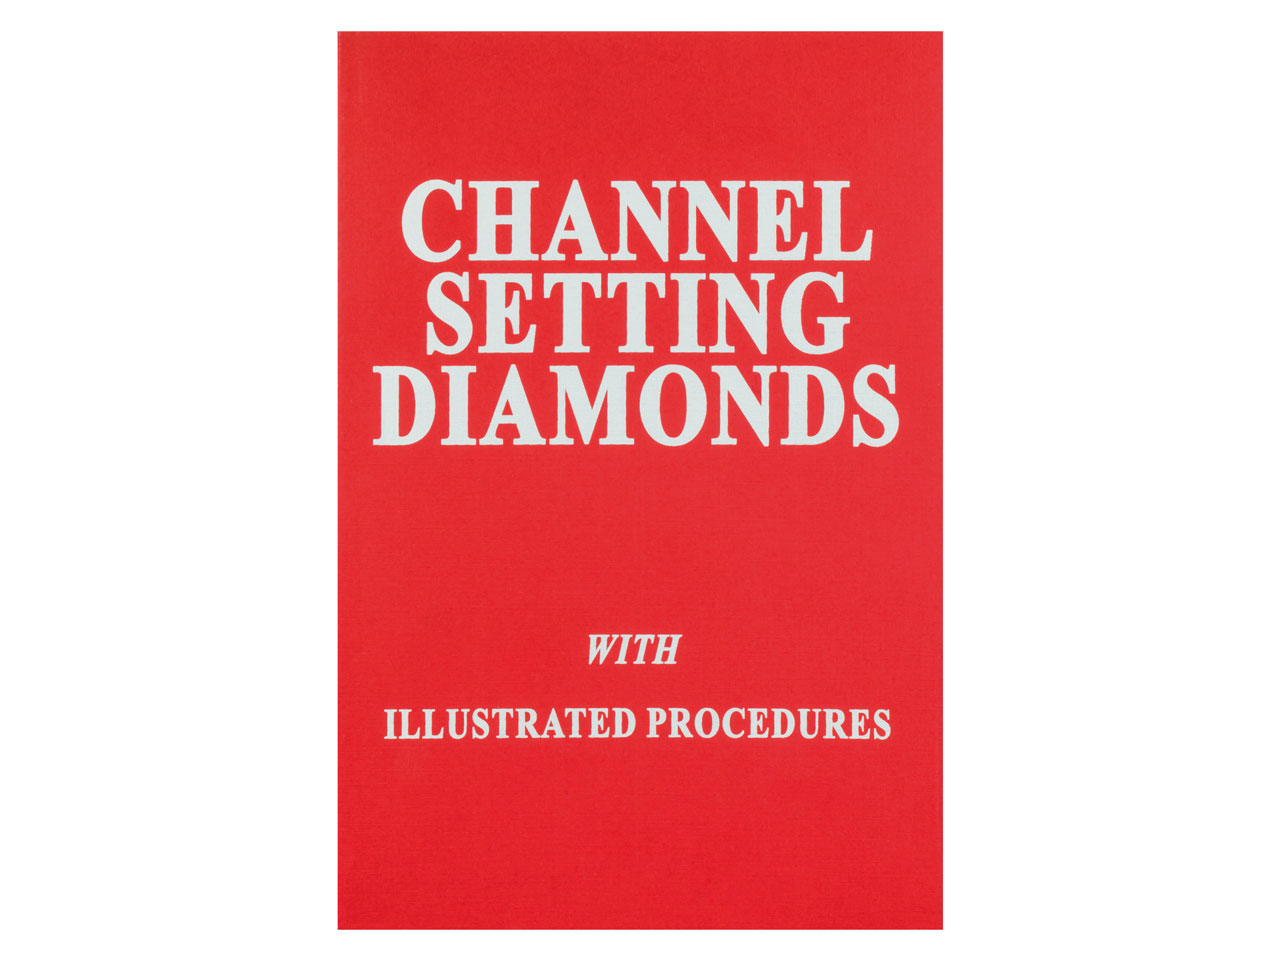 Channel Setting Diamonds By Robert R Wooding